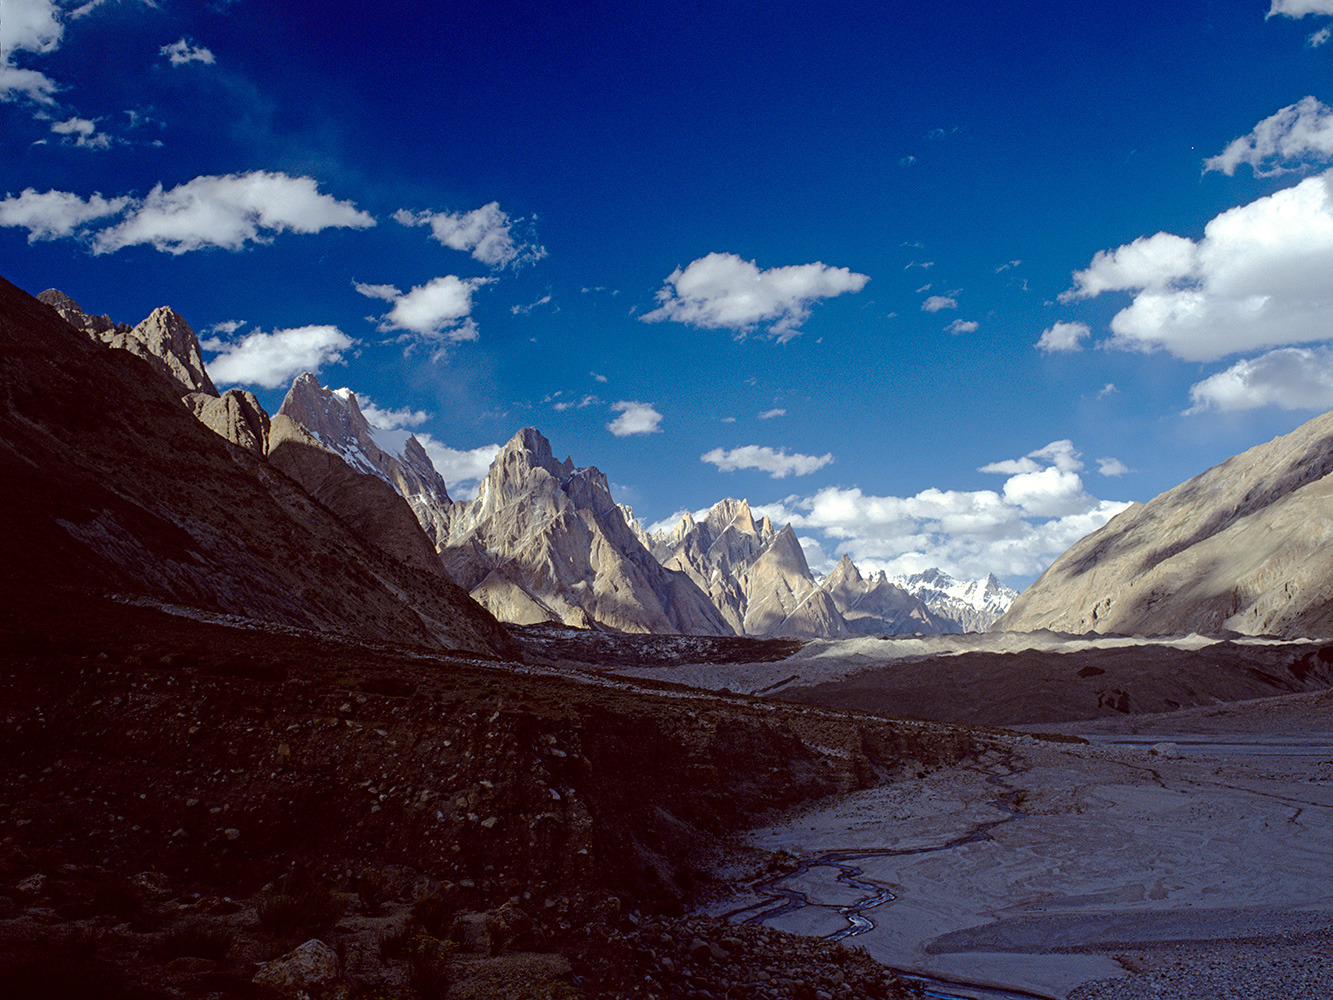 A view to the Cathdral Spires and the snout of the Baltoro glacier.